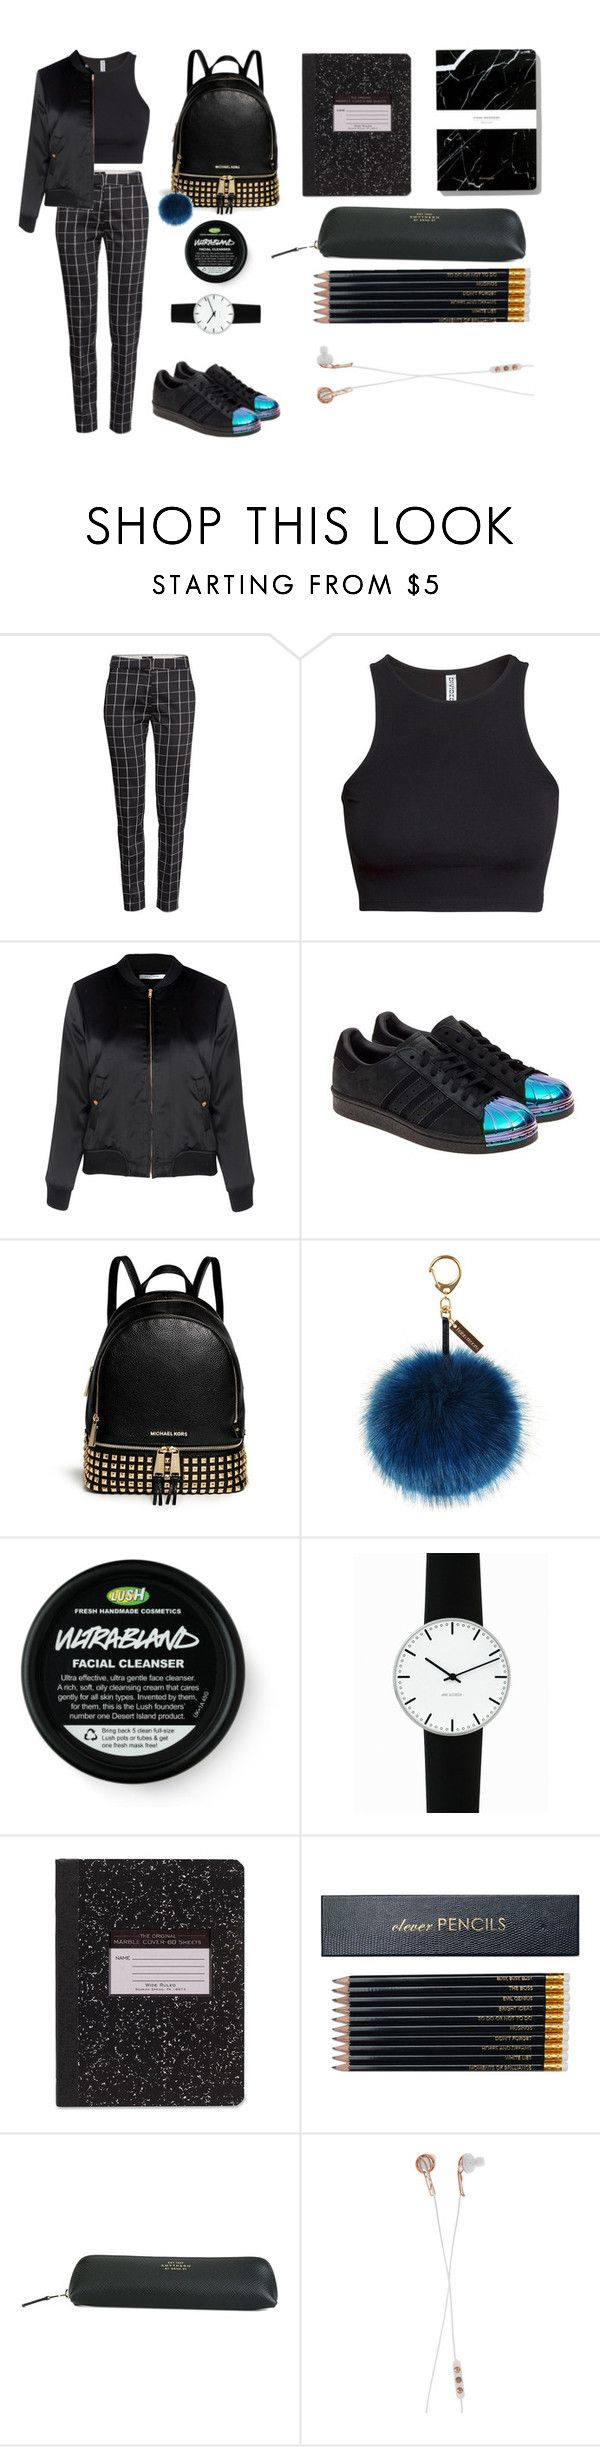 """""""First Day Of SCHOOL!"""" by eirini-kastrou on Polyvore featuring H&M, Glamorous, adidas Originals, MICHAEL Michael Kors, Helen Moore, Rosendahl, Sloane Stationery, Smythson and Frends"""